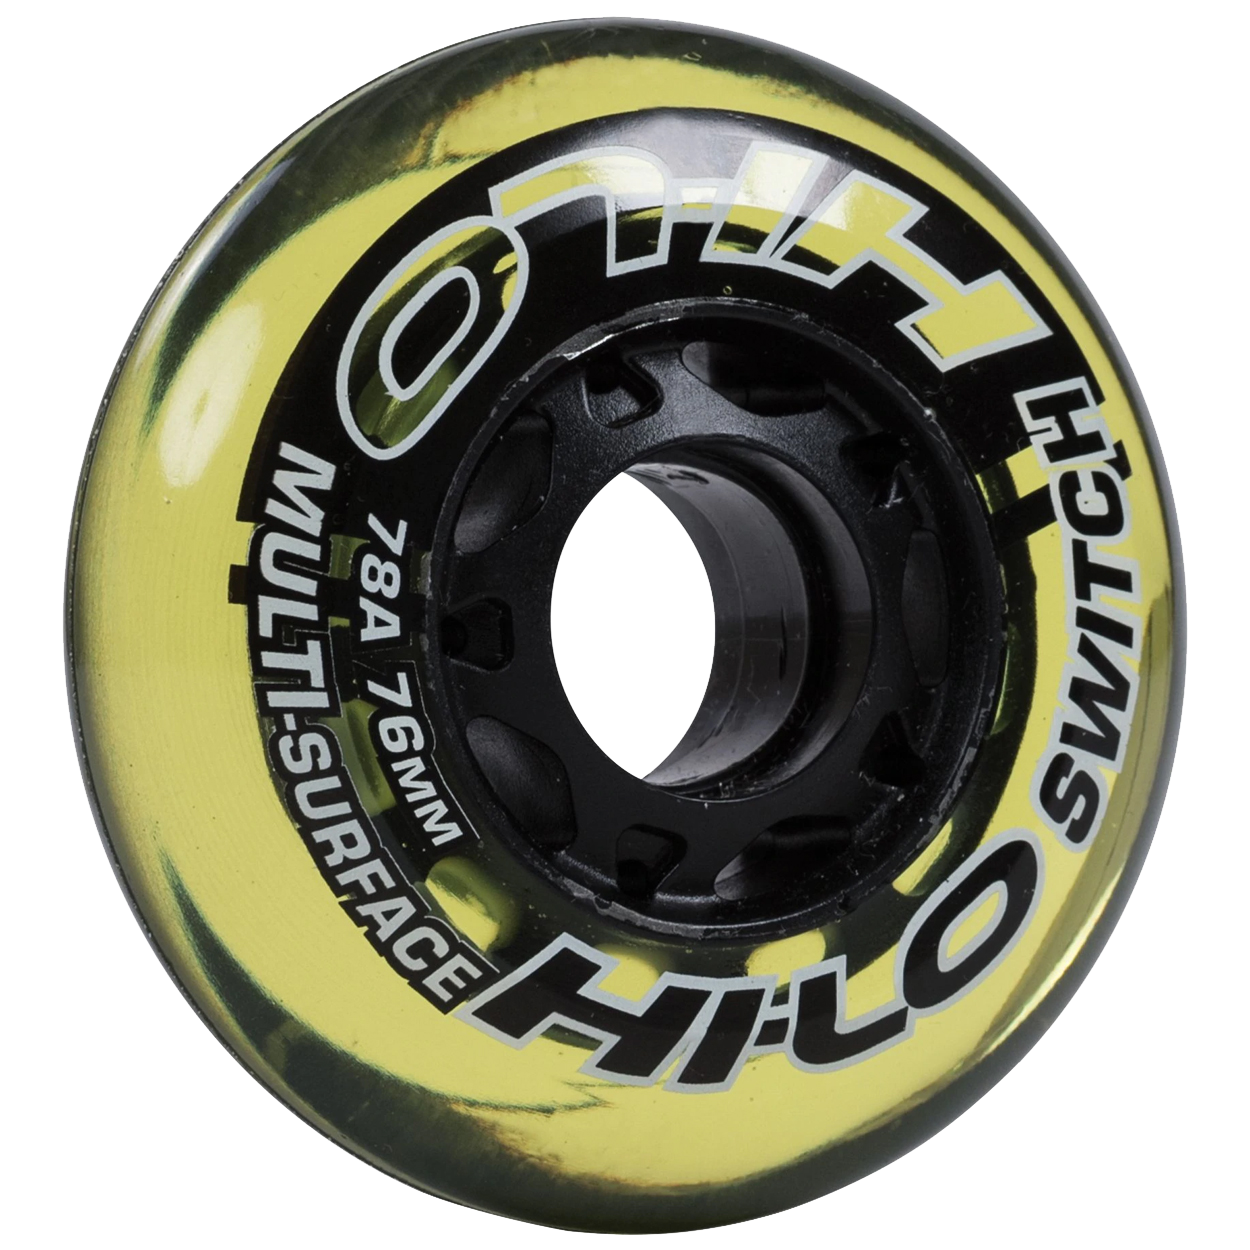 HI-LO SWITCH ROLLER HOCKEY WHEELS 4PK S16 (INDOOR / OUTDOOR),,Размер M